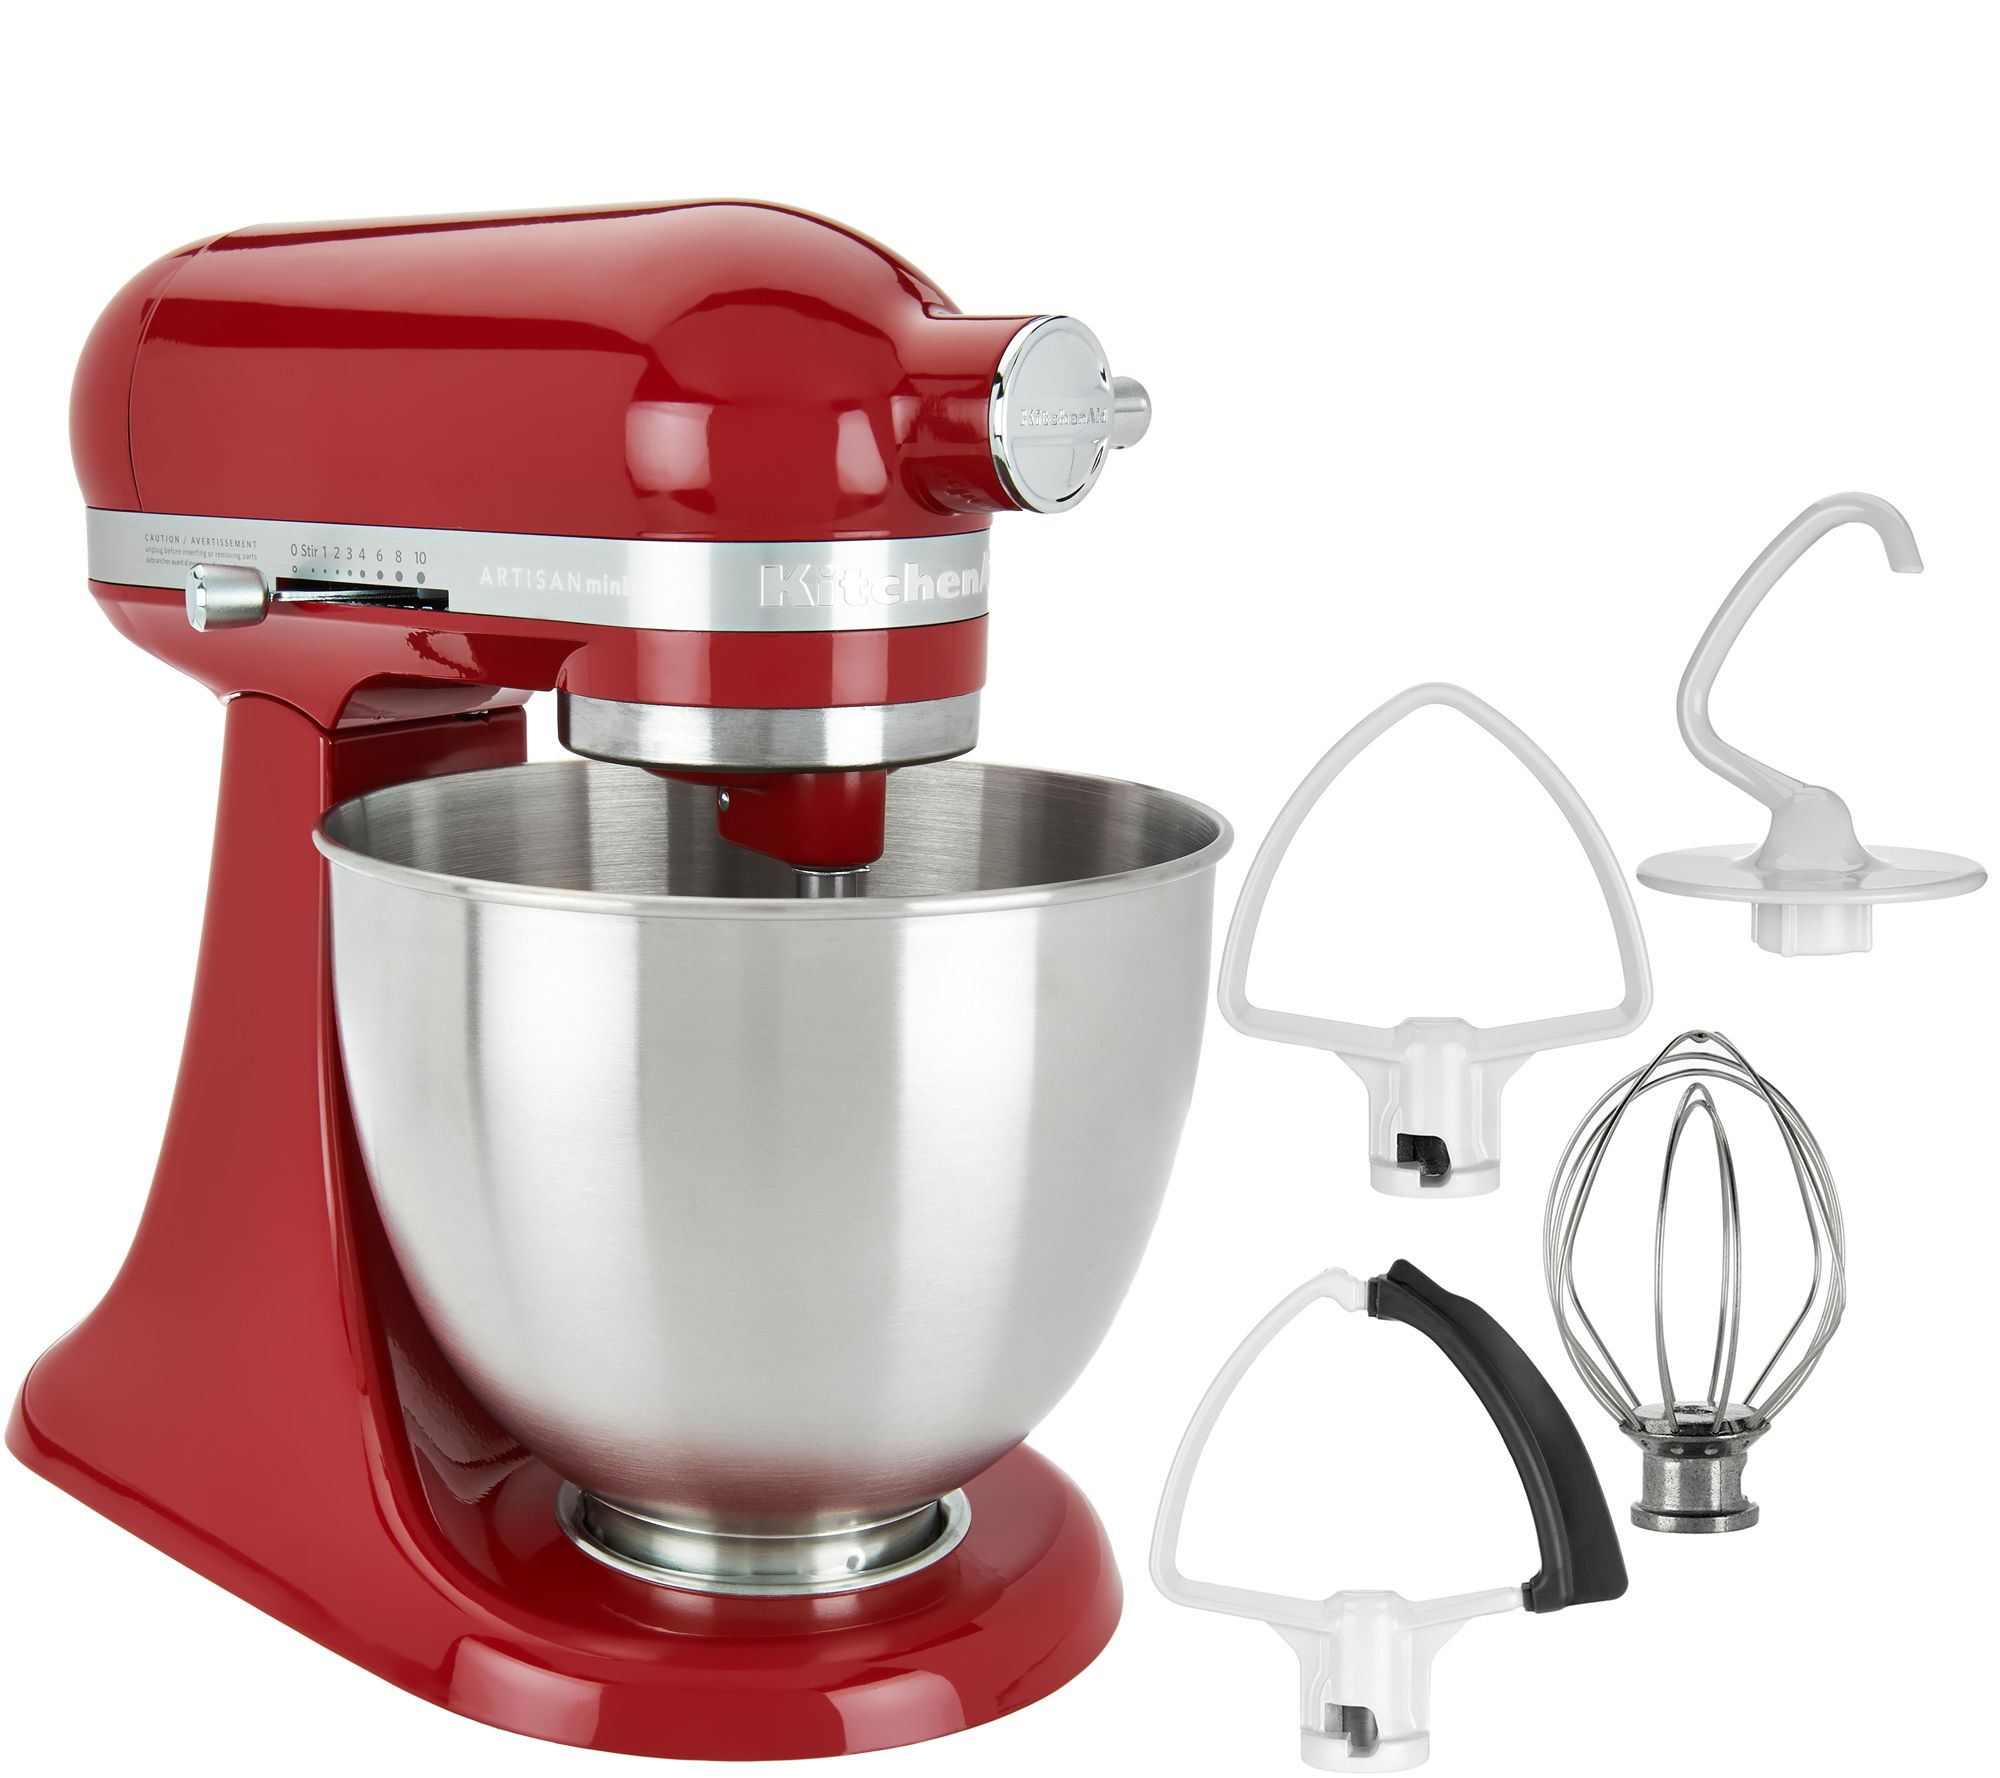 Uncategorized Qvc Kitchen Appliances kitchenaid small appliances kitchen food qvc com 3 5qt mini artisan stand mixer with flex edge beater k45915